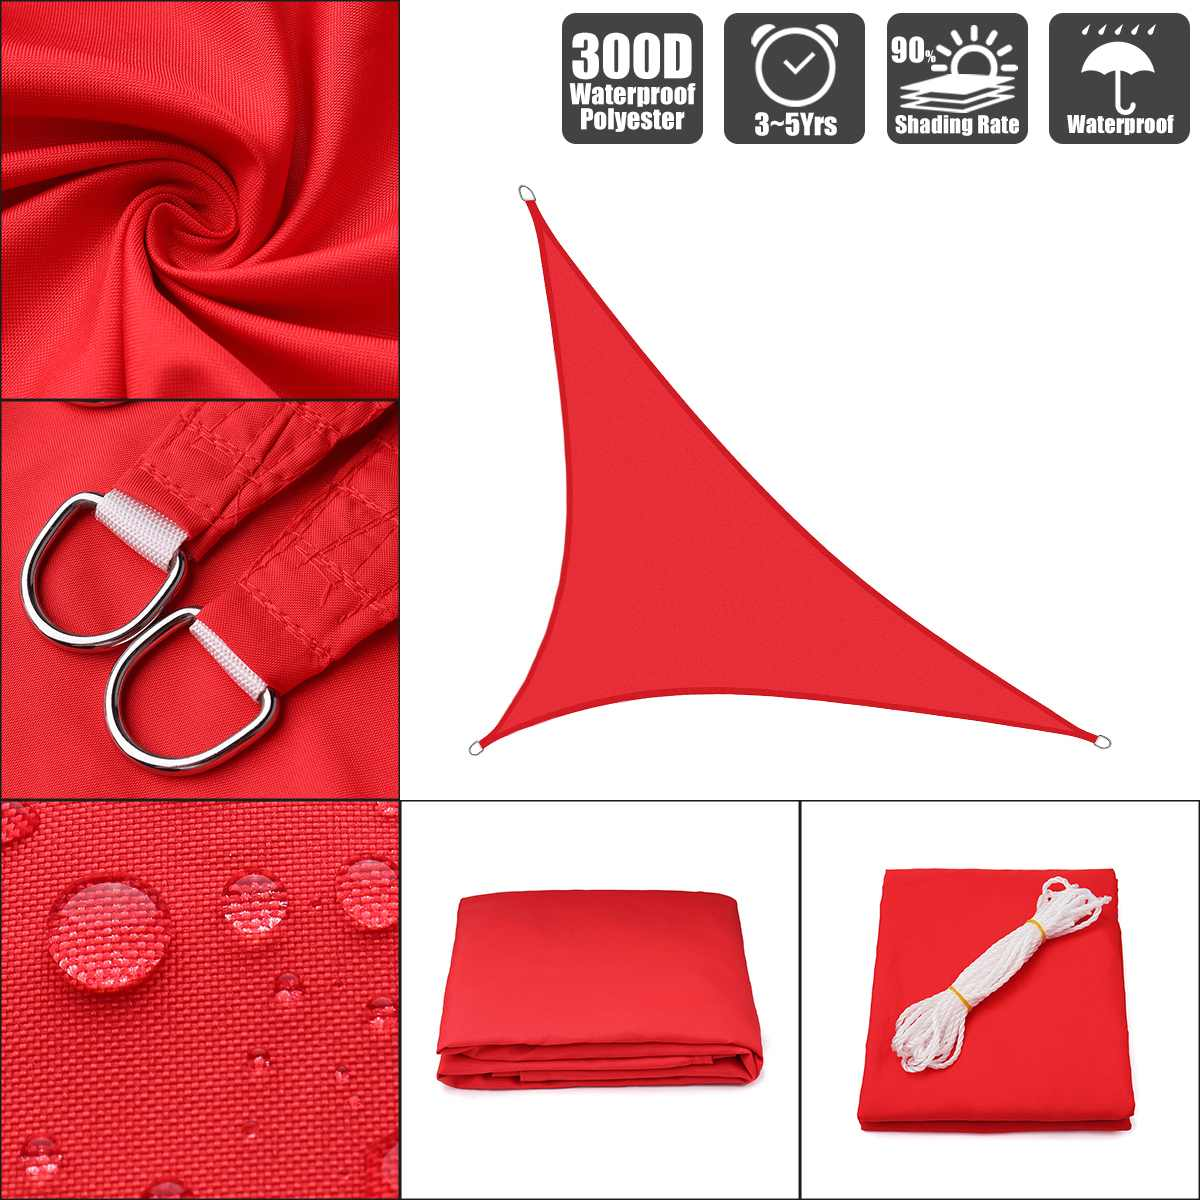 3x3x3 4x4x4 3x3x4.3 Bright red 300D polyester oxford equilateral right triangle visor sail pool cover sunscreen tent waterproof3x3x3 4x4x4 3x3x4.3 Bright red 300D polyester oxford equilateral right triangle visor sail pool cover sunscreen tent waterproof